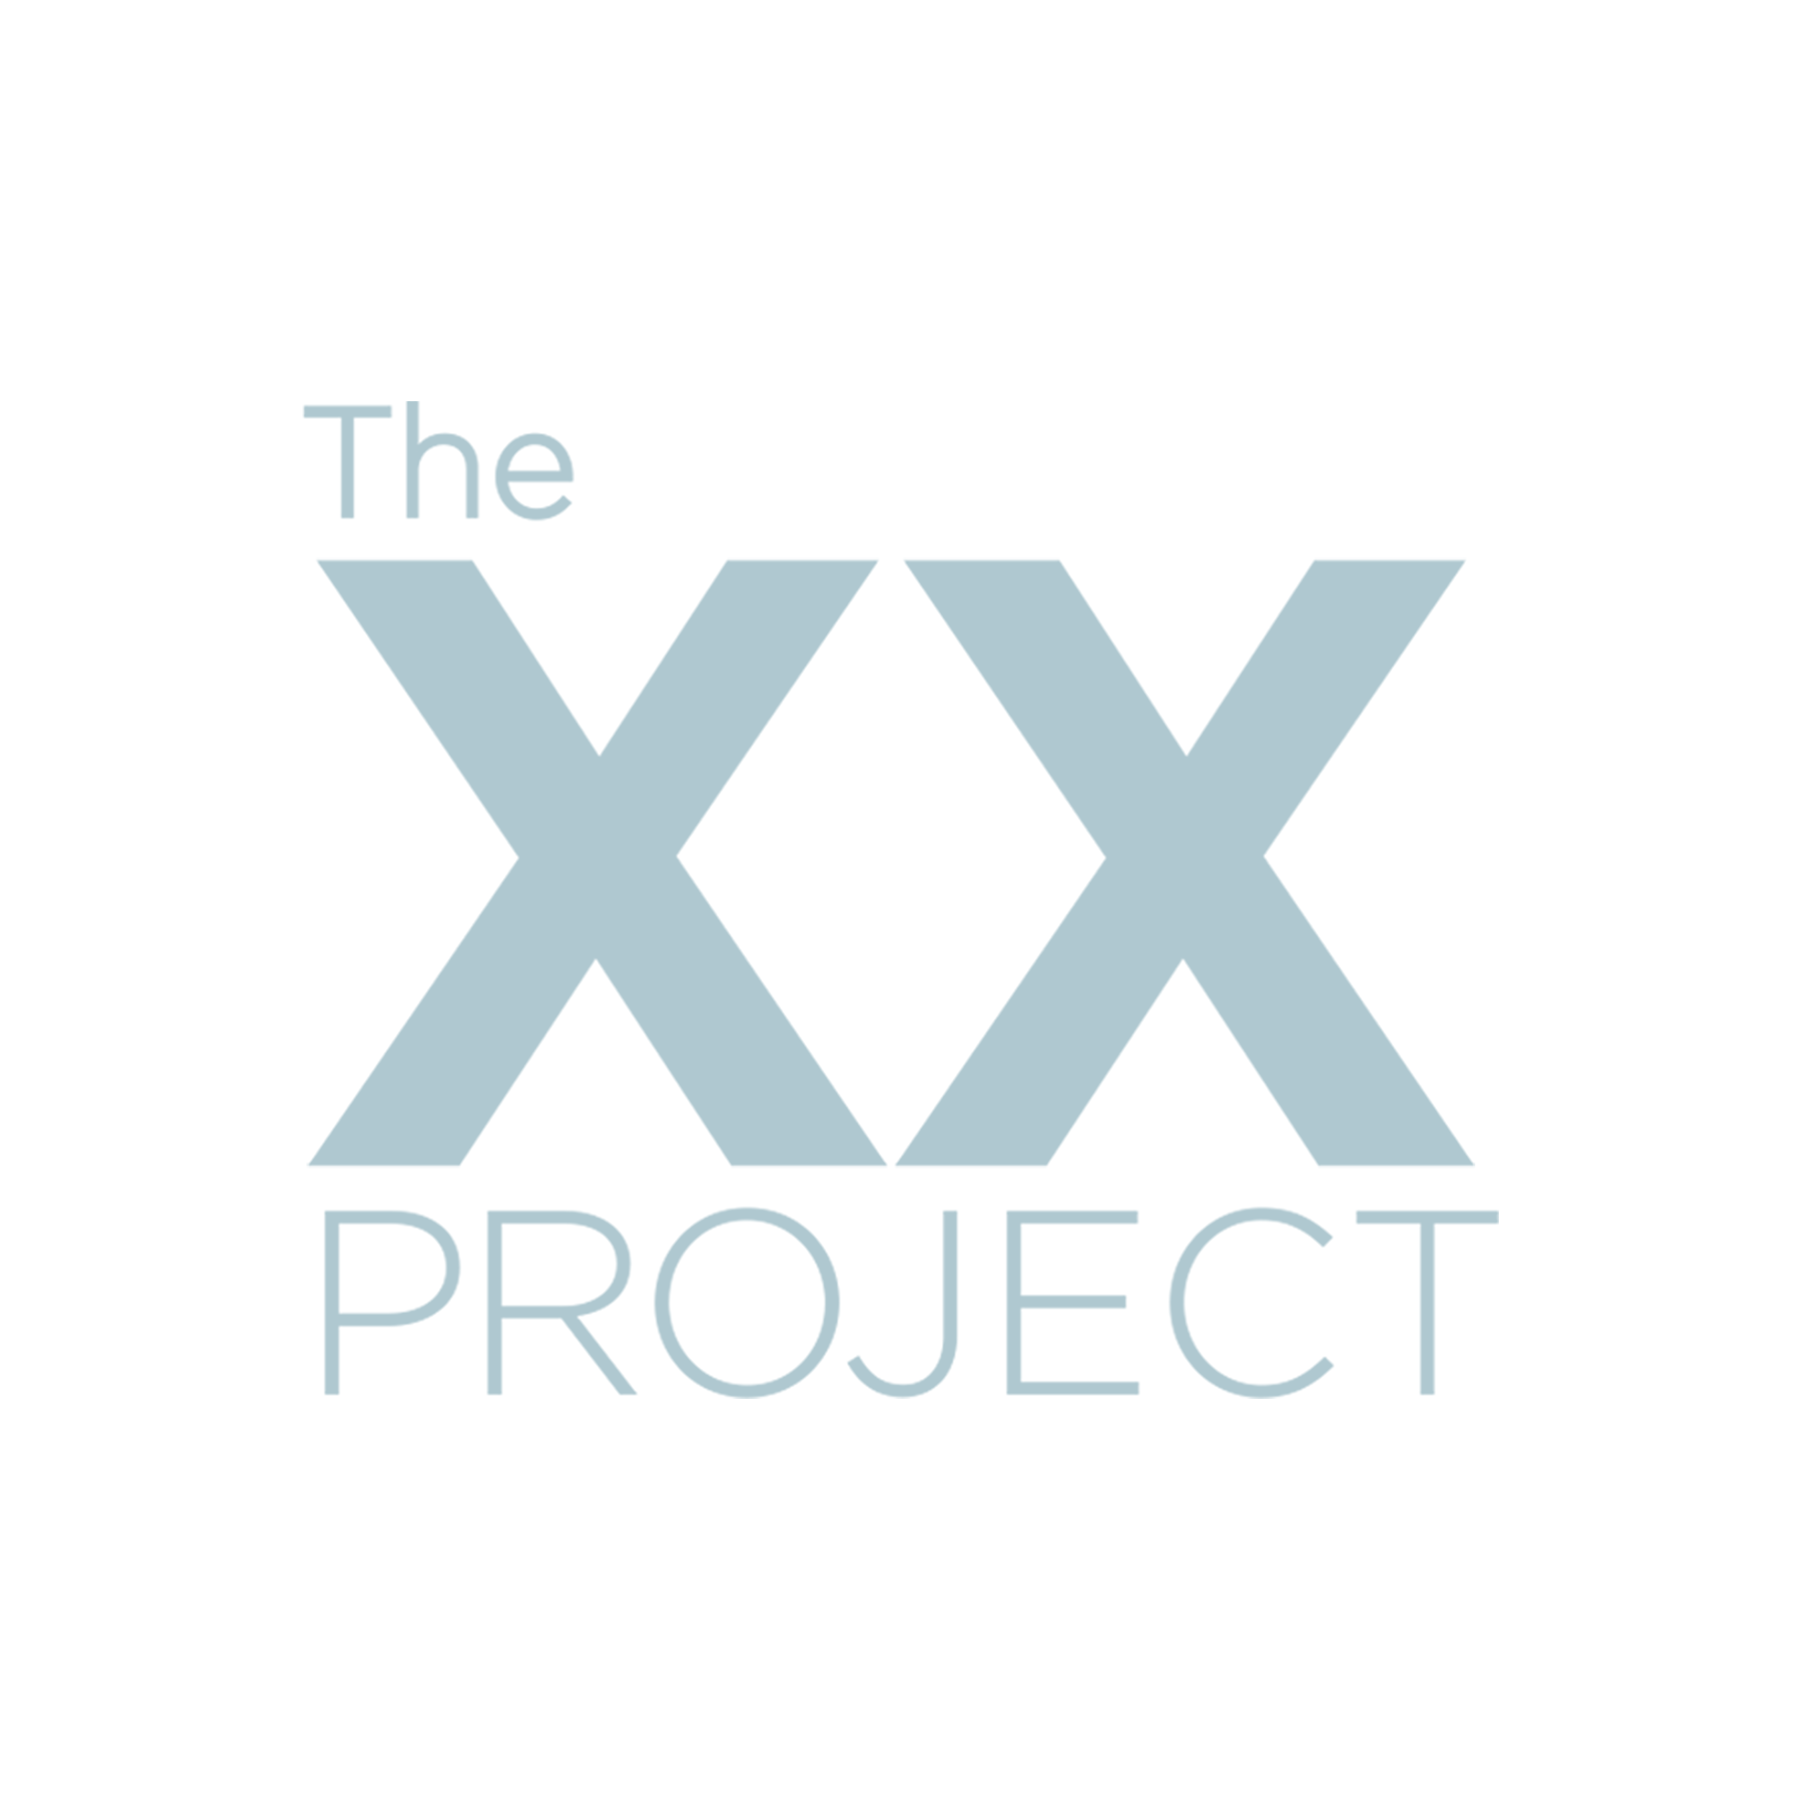 TheXXProject_Icon white back.png